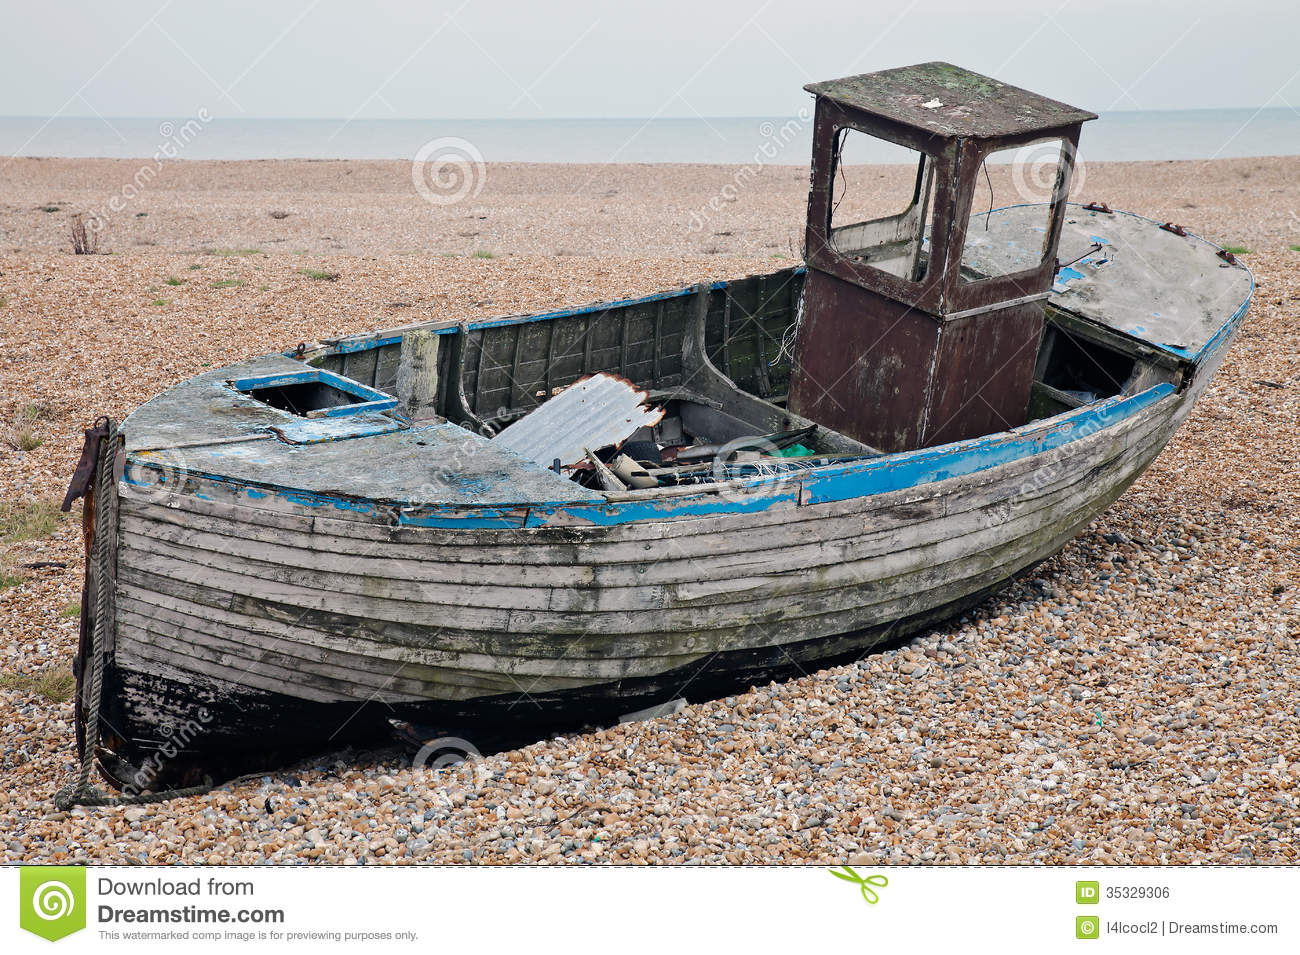 Abandoned derelict fishing boat royalty free stock image for Long beach fishing boat